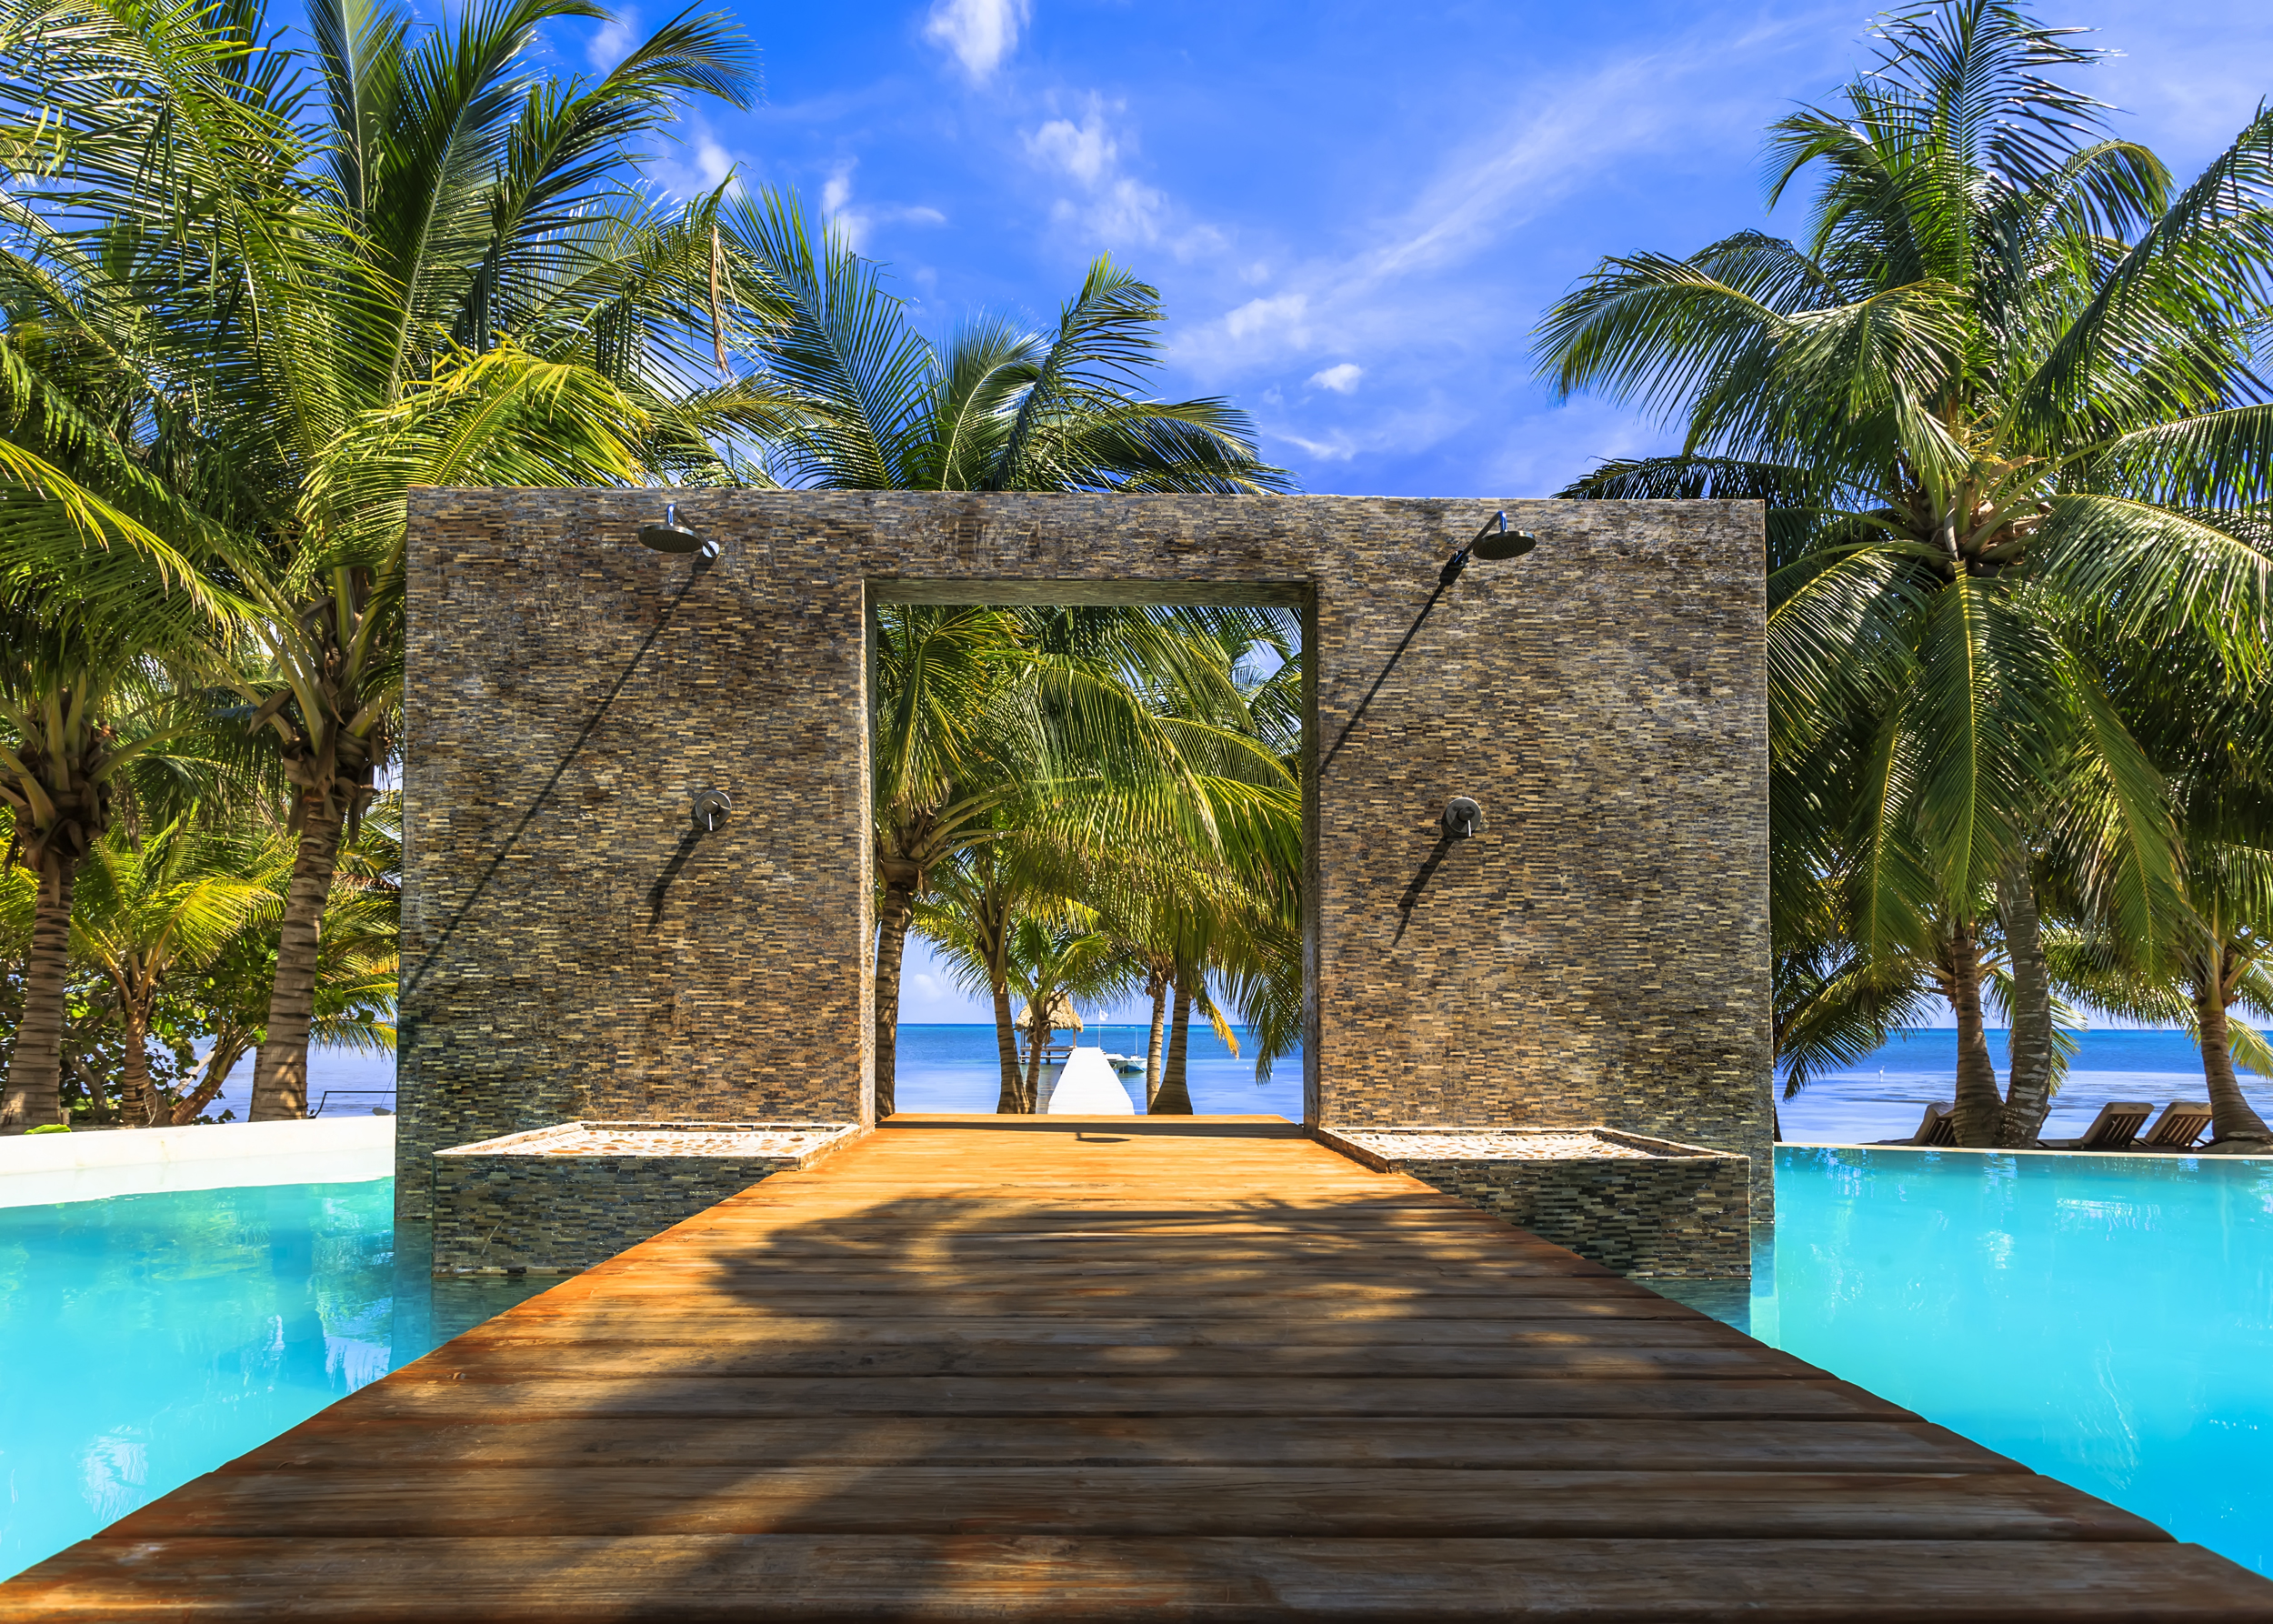 Lap in luxury best pools in the caribbean for Luxury hotel resorts